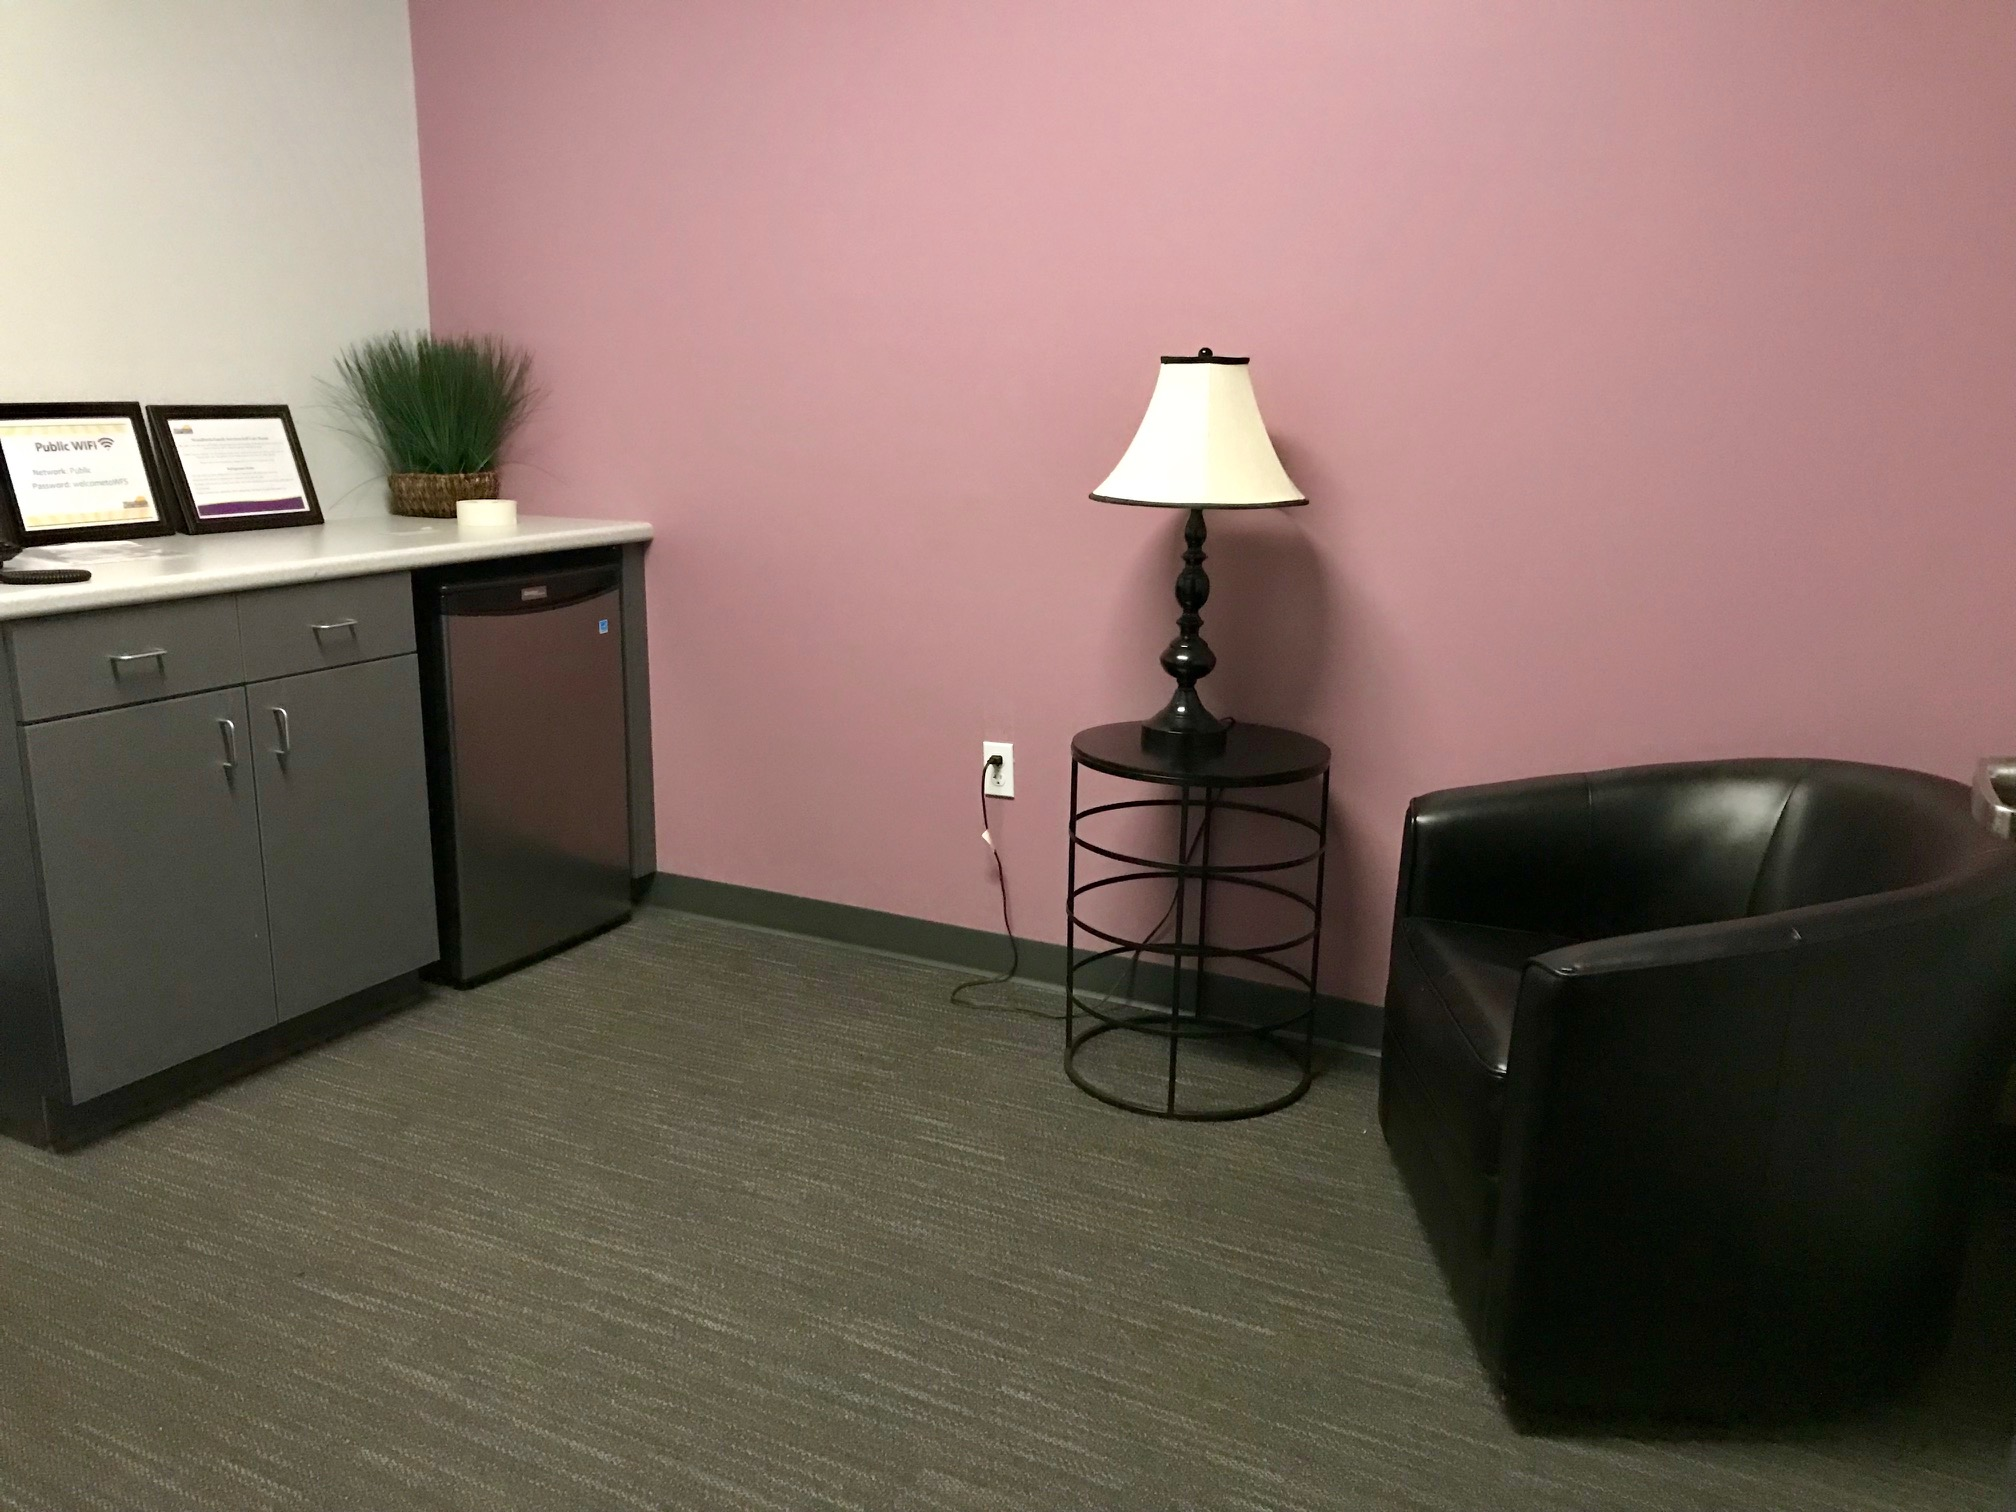 Self-Care - A low sensory self-care room is available for attendees who may need time away from a meeting or a brief sensory break.